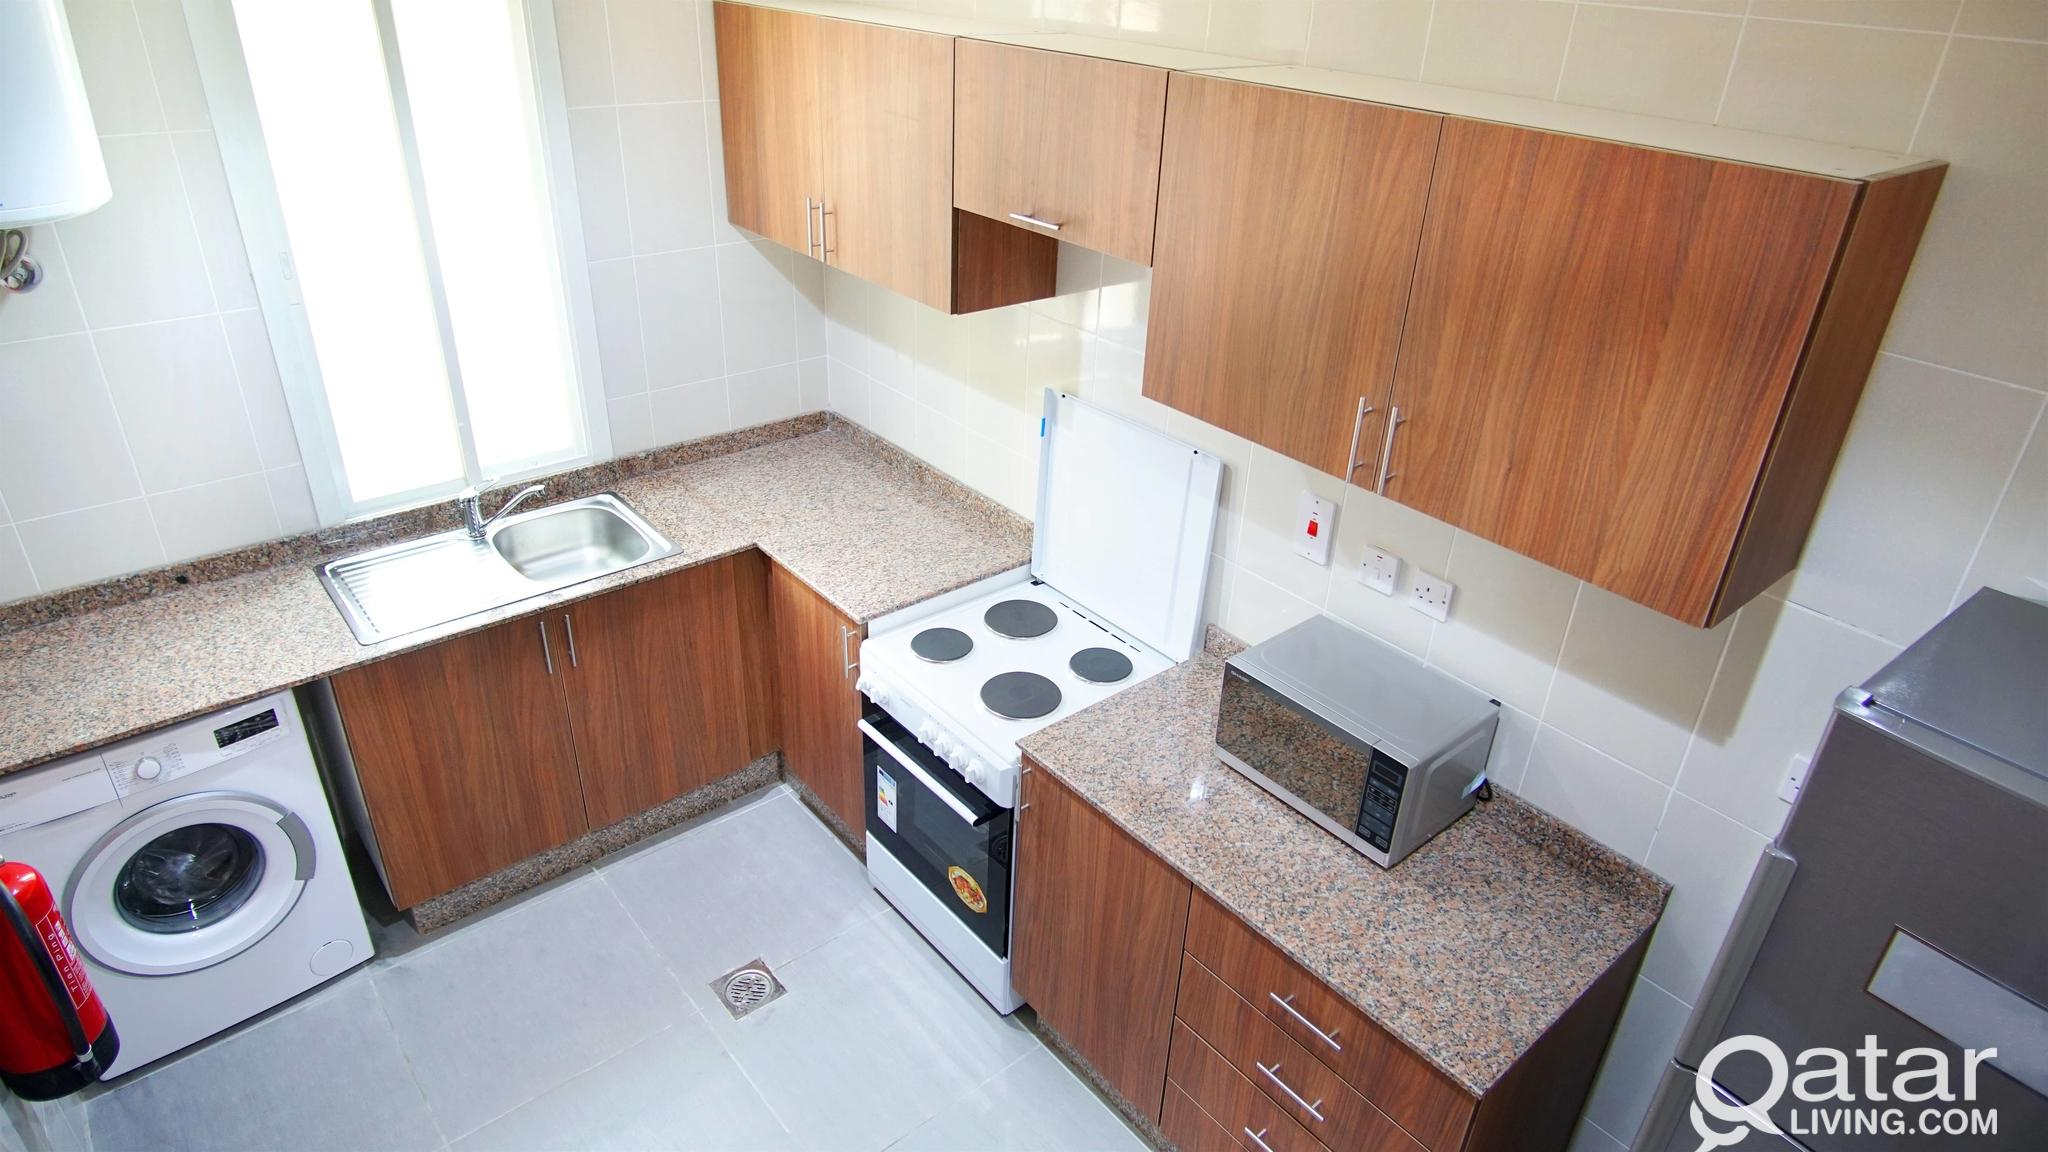 F/F 1BHK! (including W/E + FREE Internet) - No Com